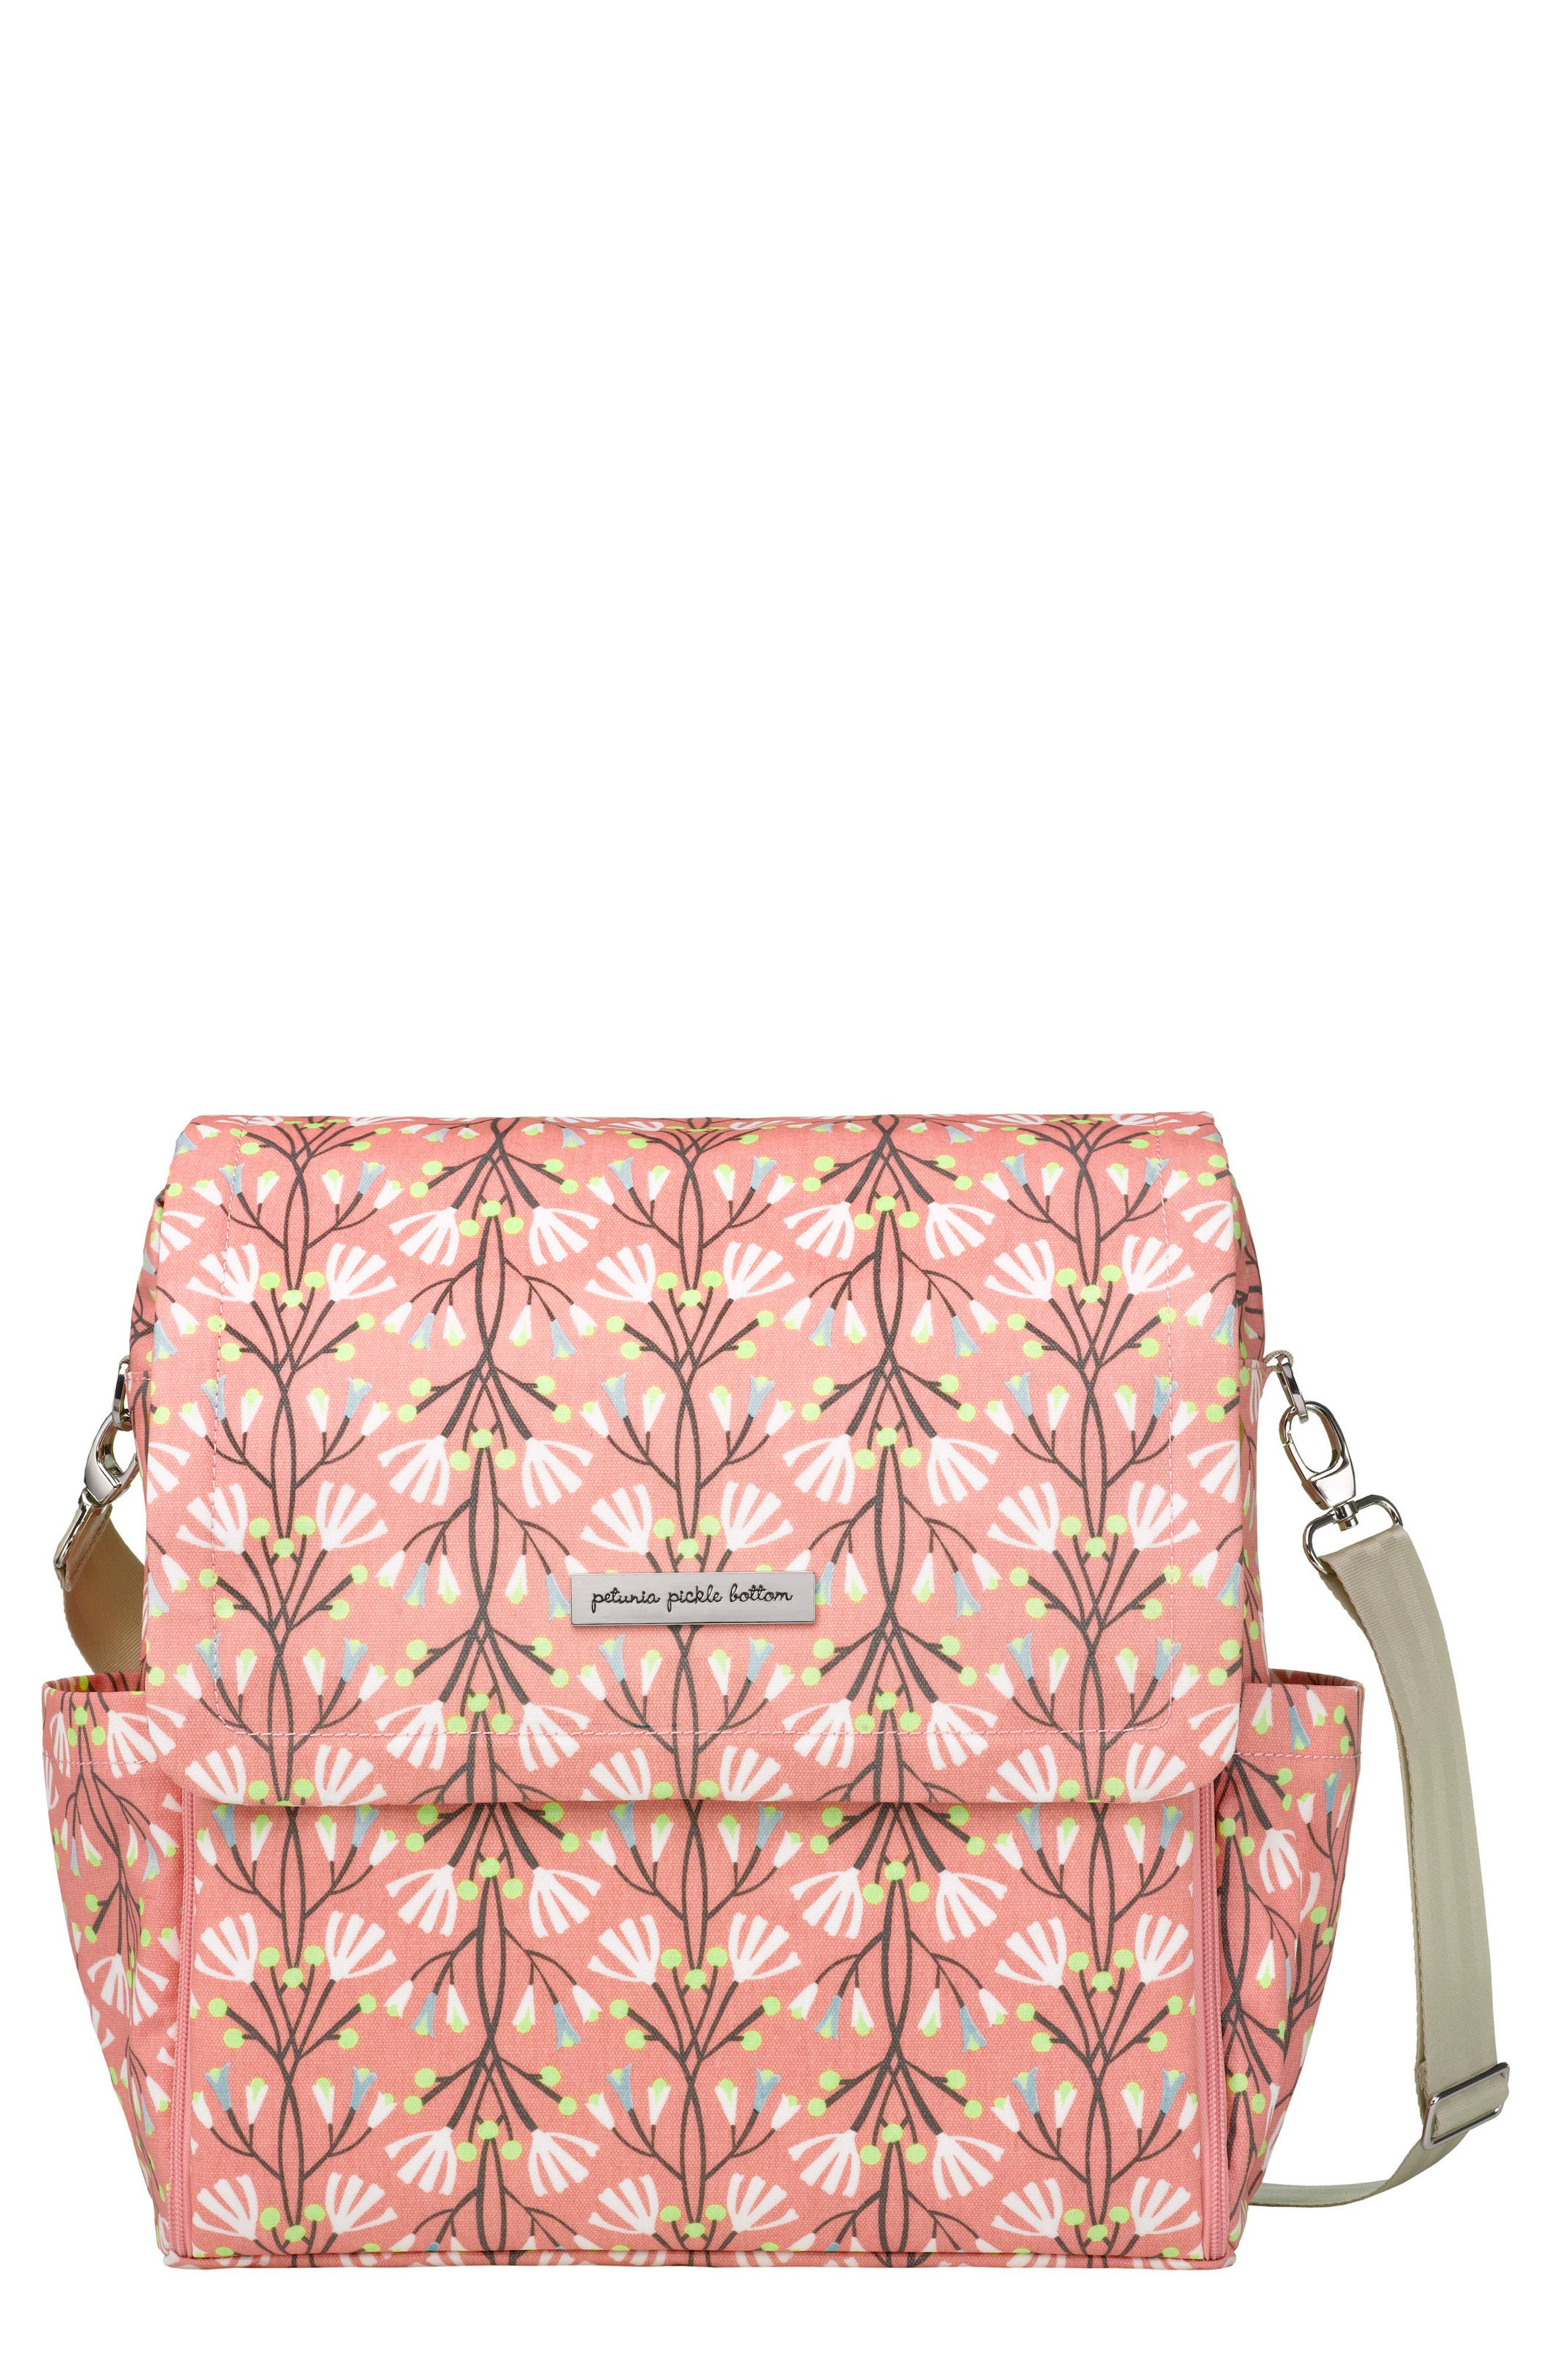 Petunia Pickle Bottom 'Boxy Glazed' Diaper Bag